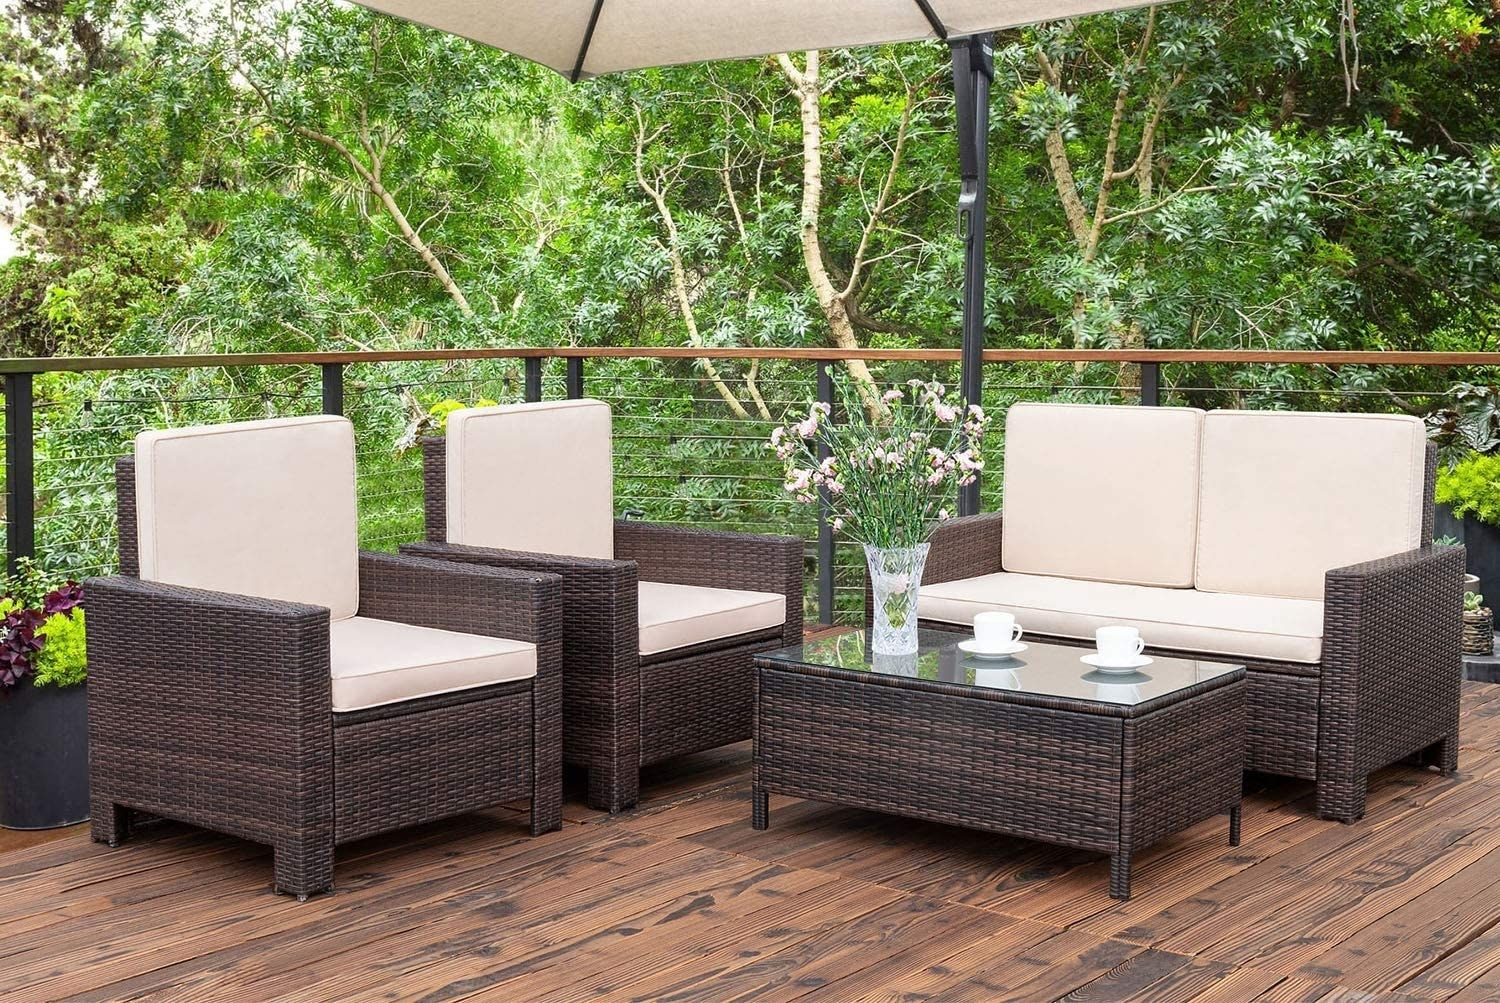 two chairs, a love seat, and a coffee table with dark brown rattan bases and light tan cushions